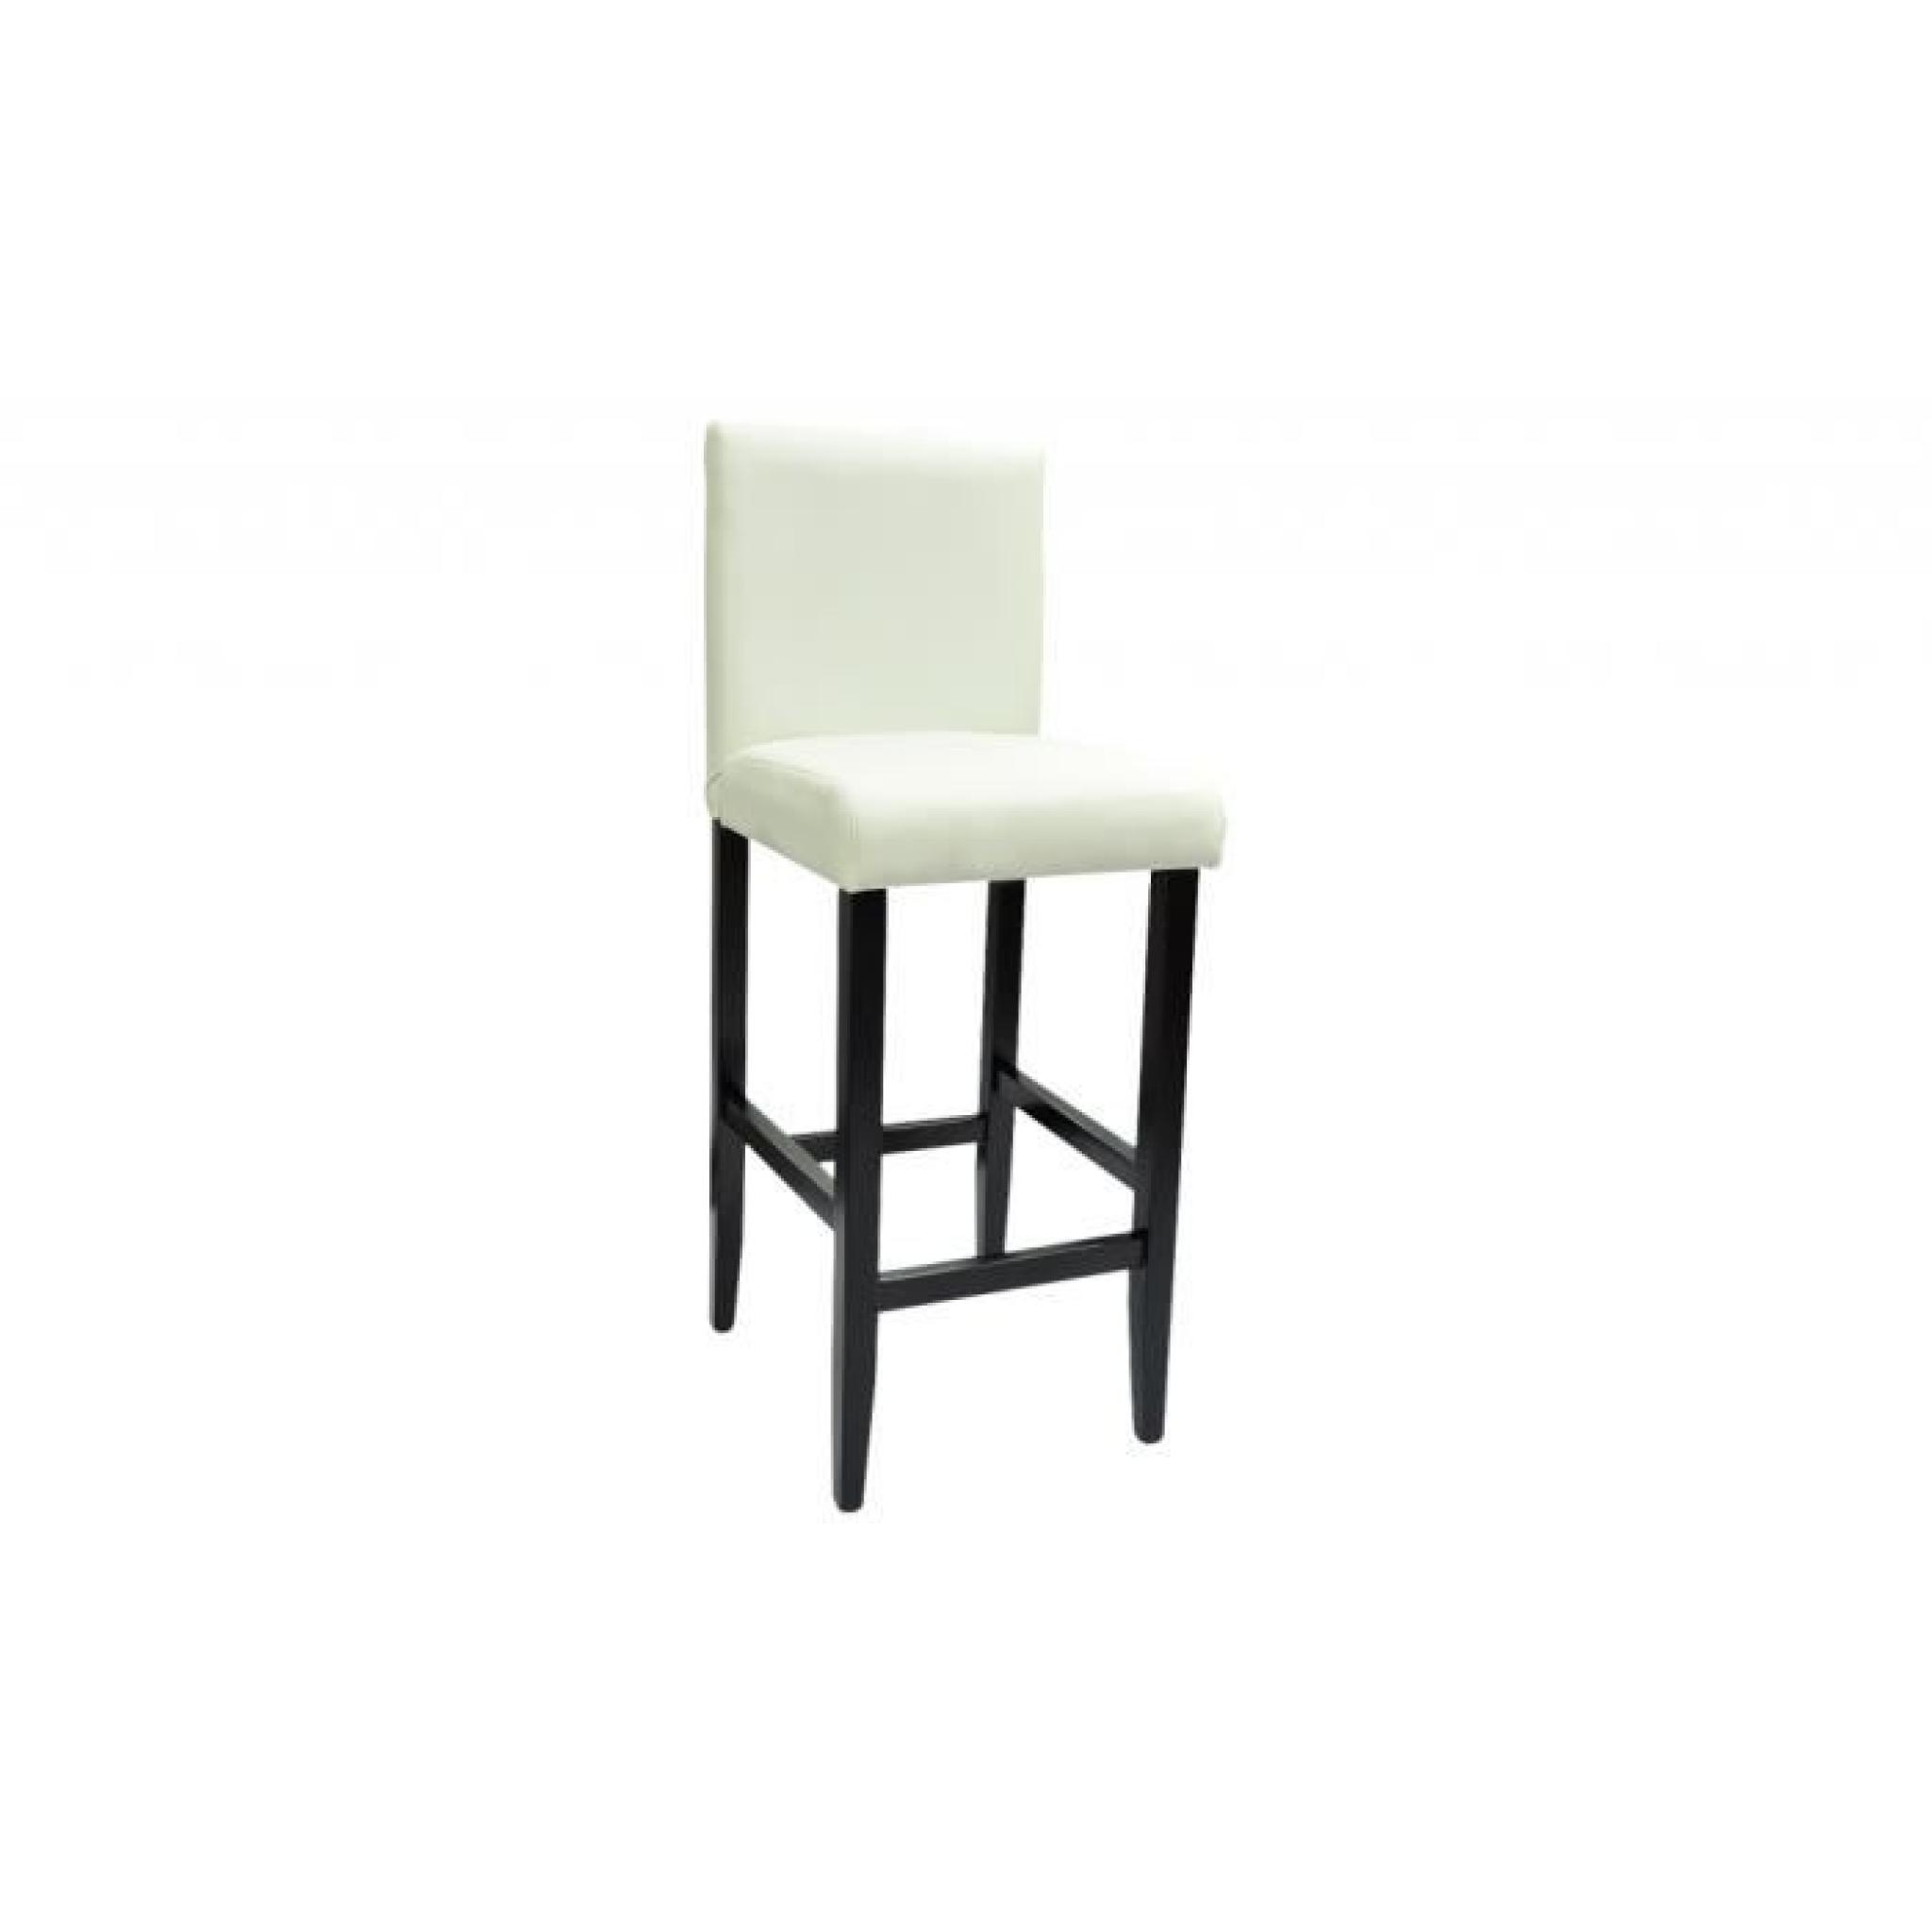 6 Tabourets De Bar Lot De 6 Tabourets De Bar Chicago Blanc Achat Vente